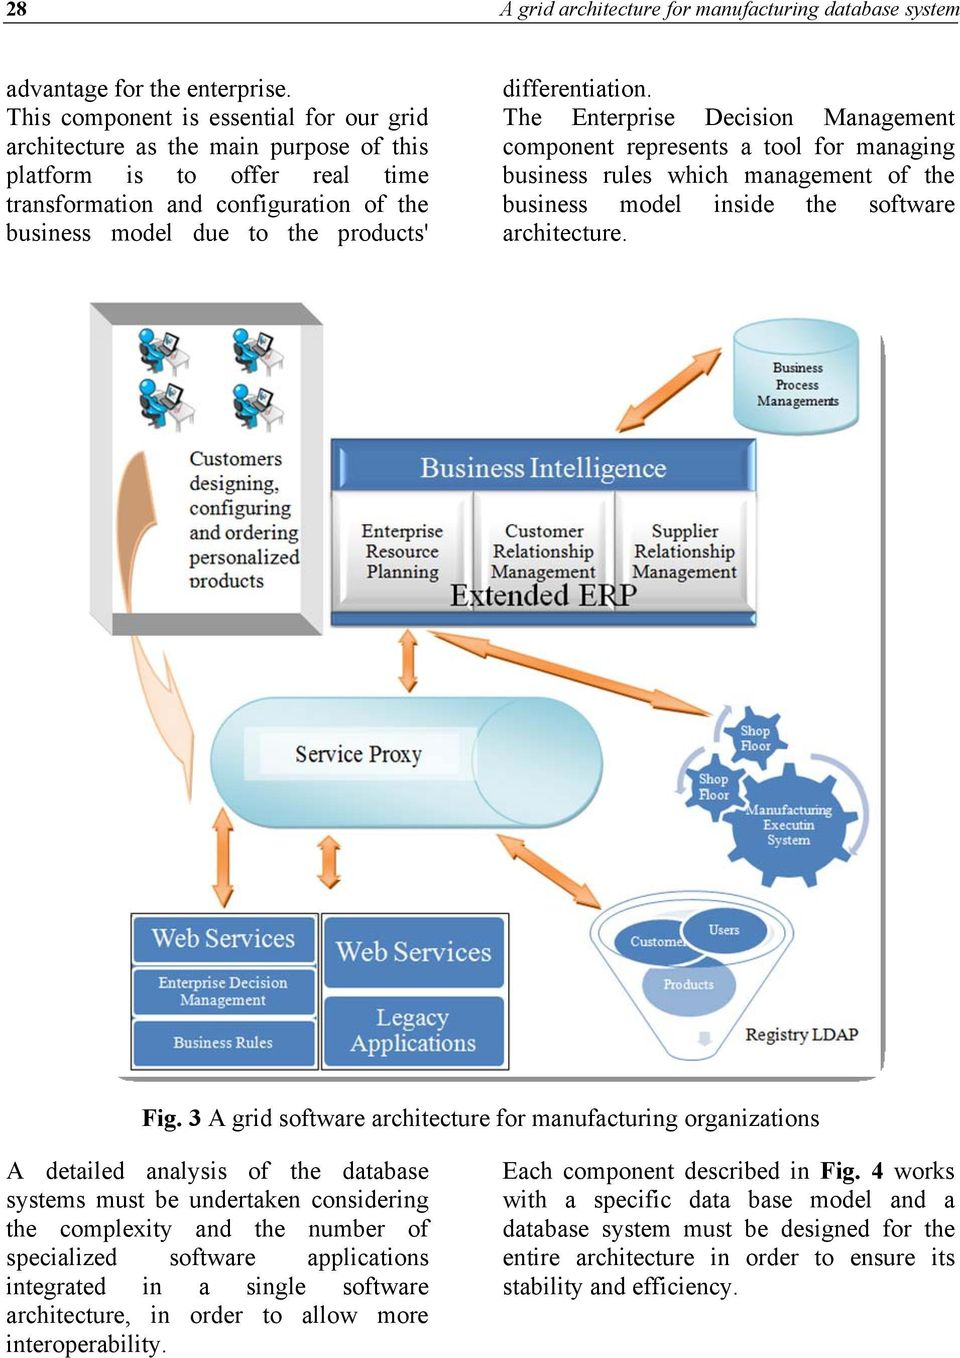 differentiation. The Enterprise Decision Management component represents a tool for managing business rules which management of the business model inside the software architecture. Fig.